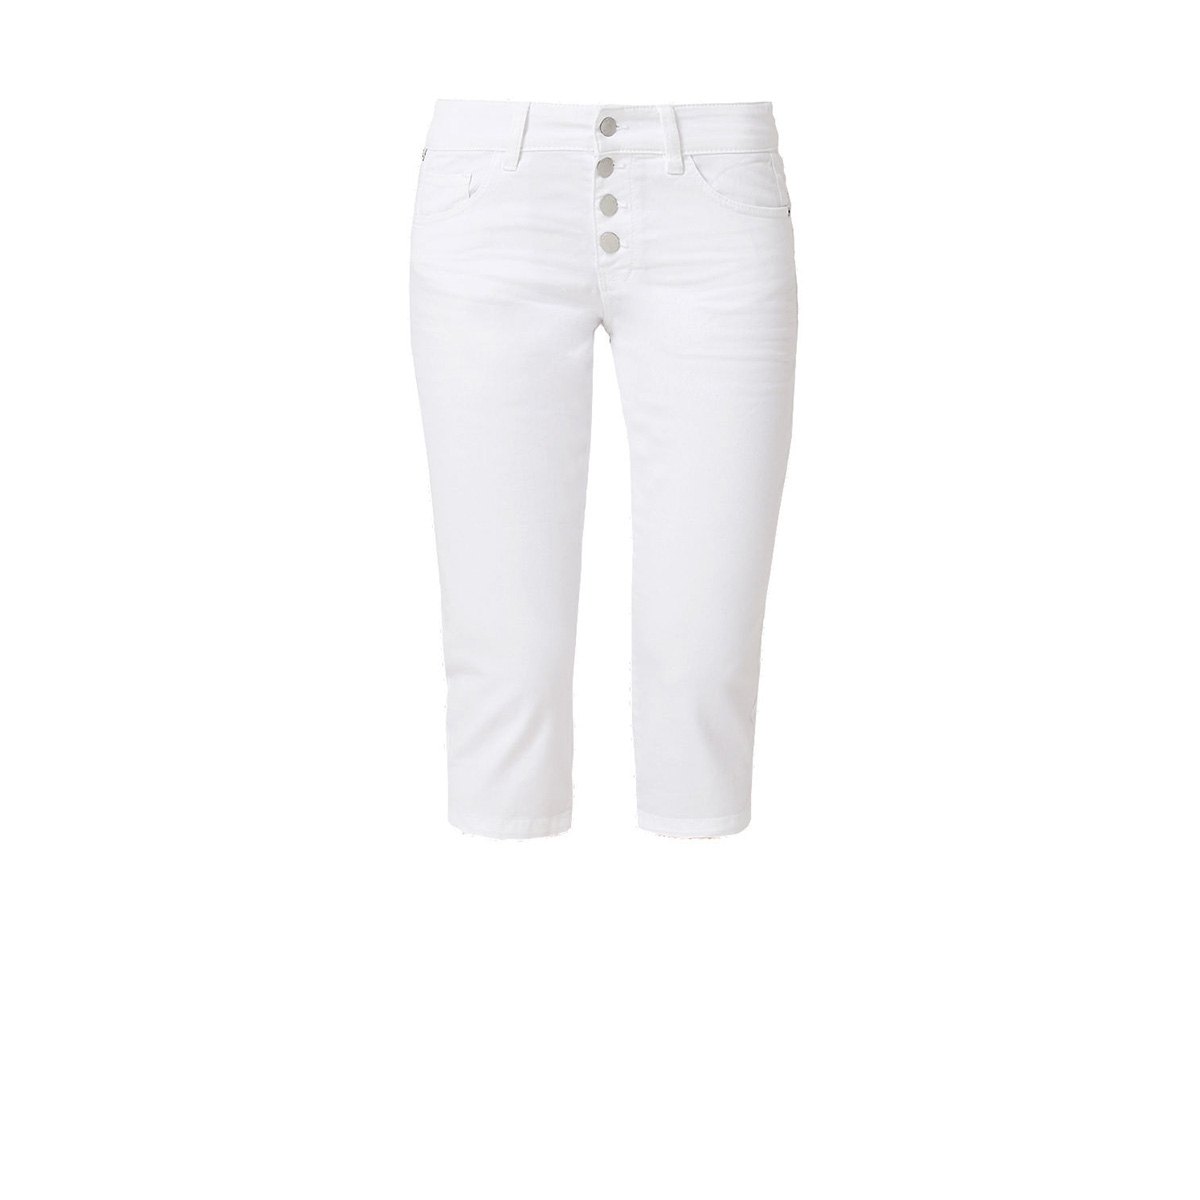 catie 46905724862 q/s designed by jeans 0100